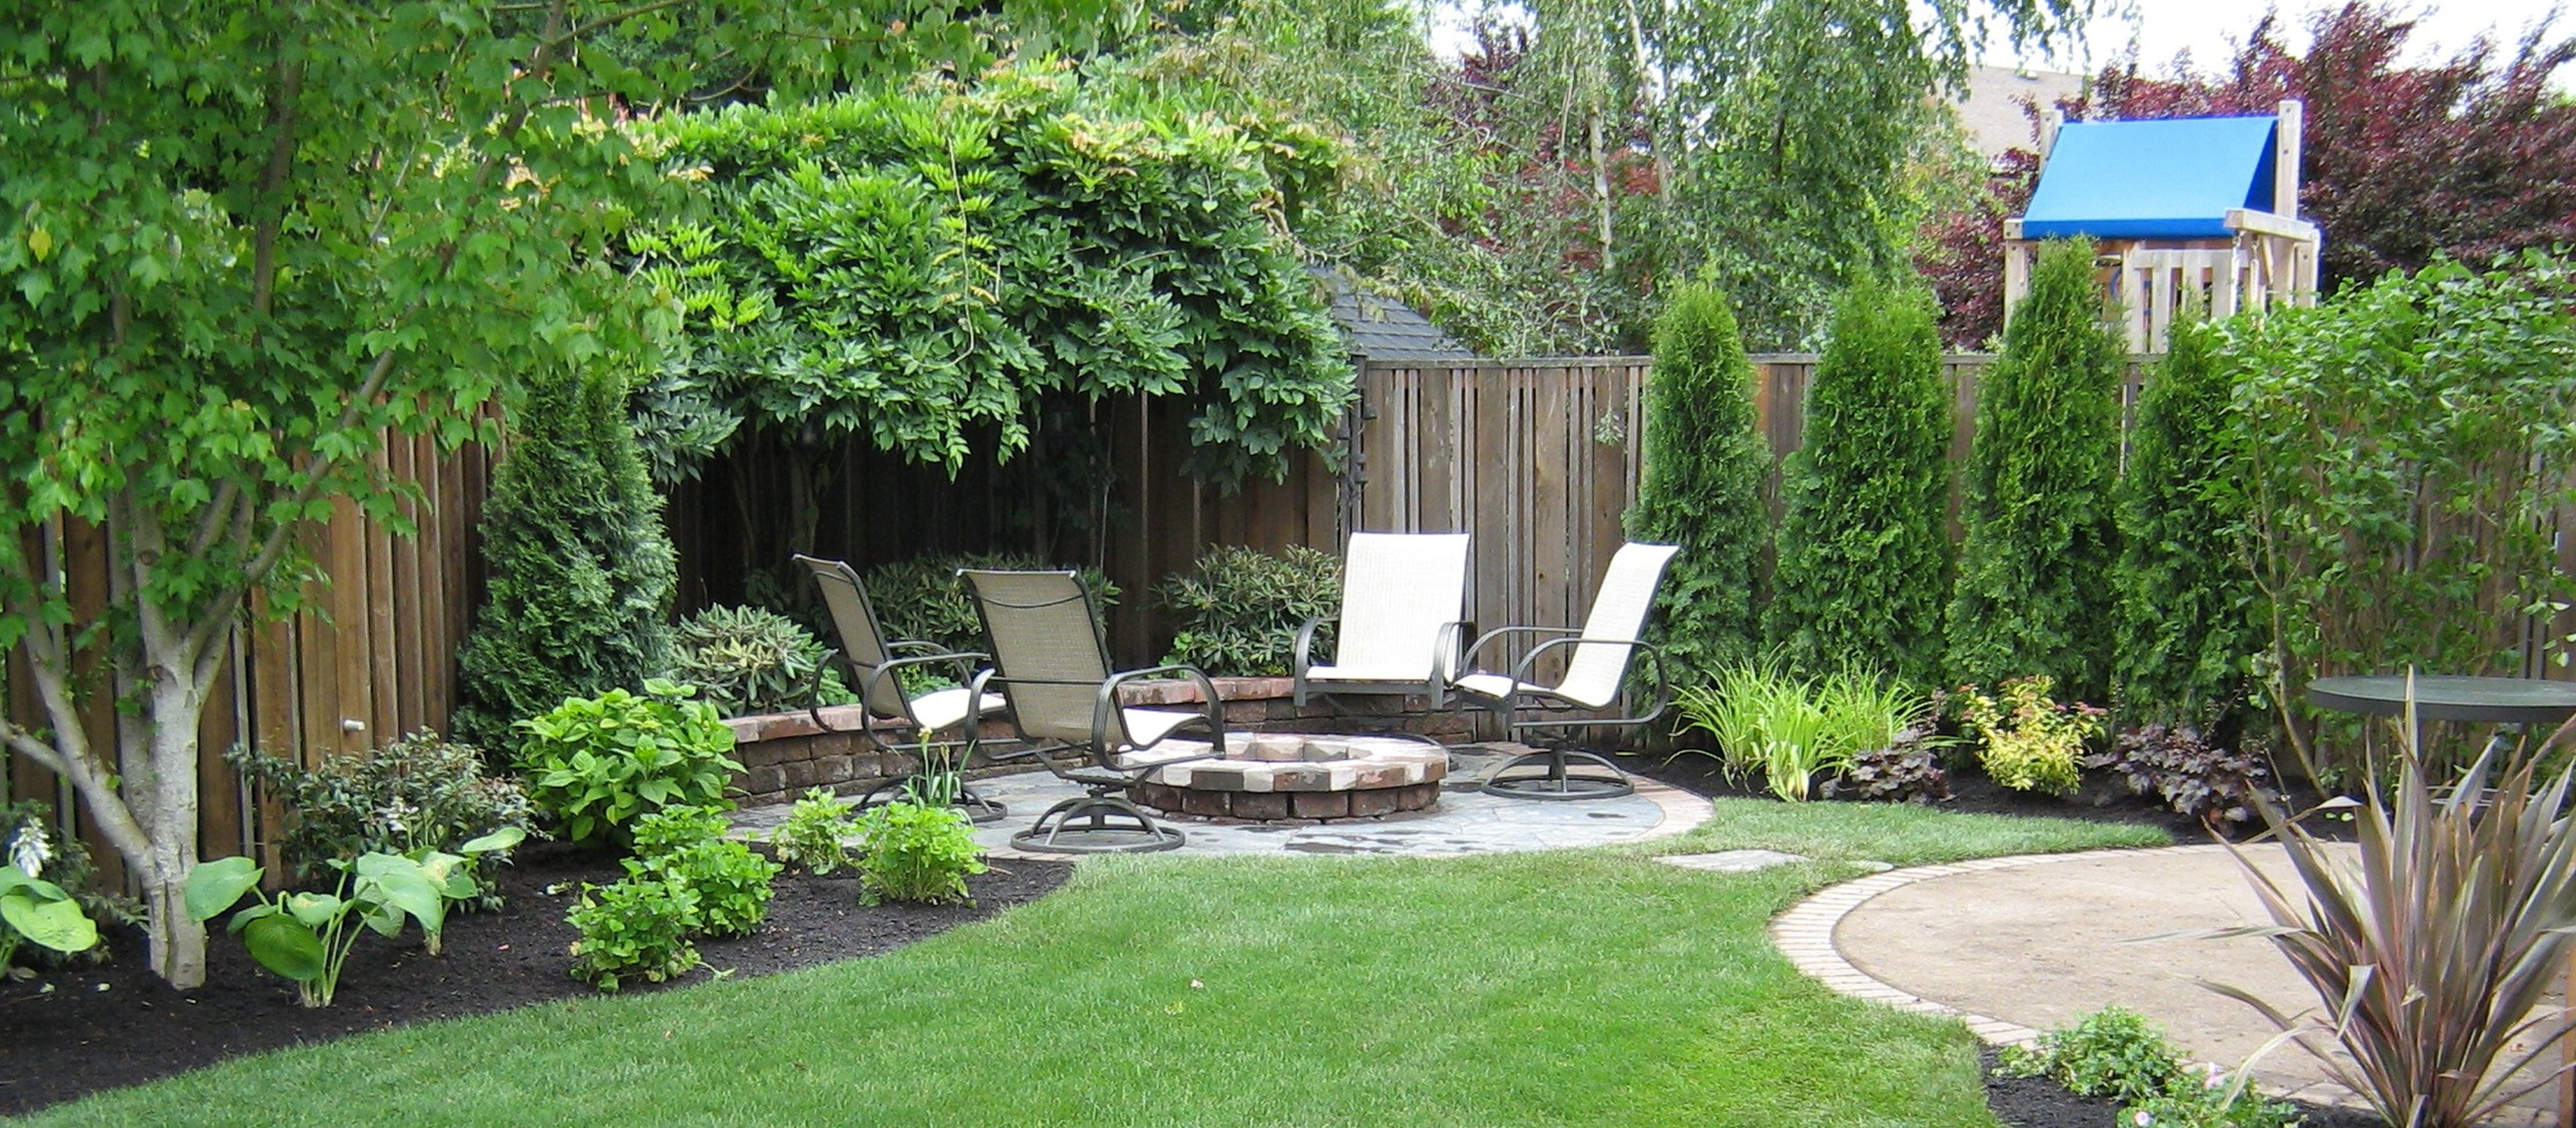 Amazing Ideas For Small Backyard Landscaping Great Affordable inside 11 Genius Designs of How to Make Backyard Landscaping